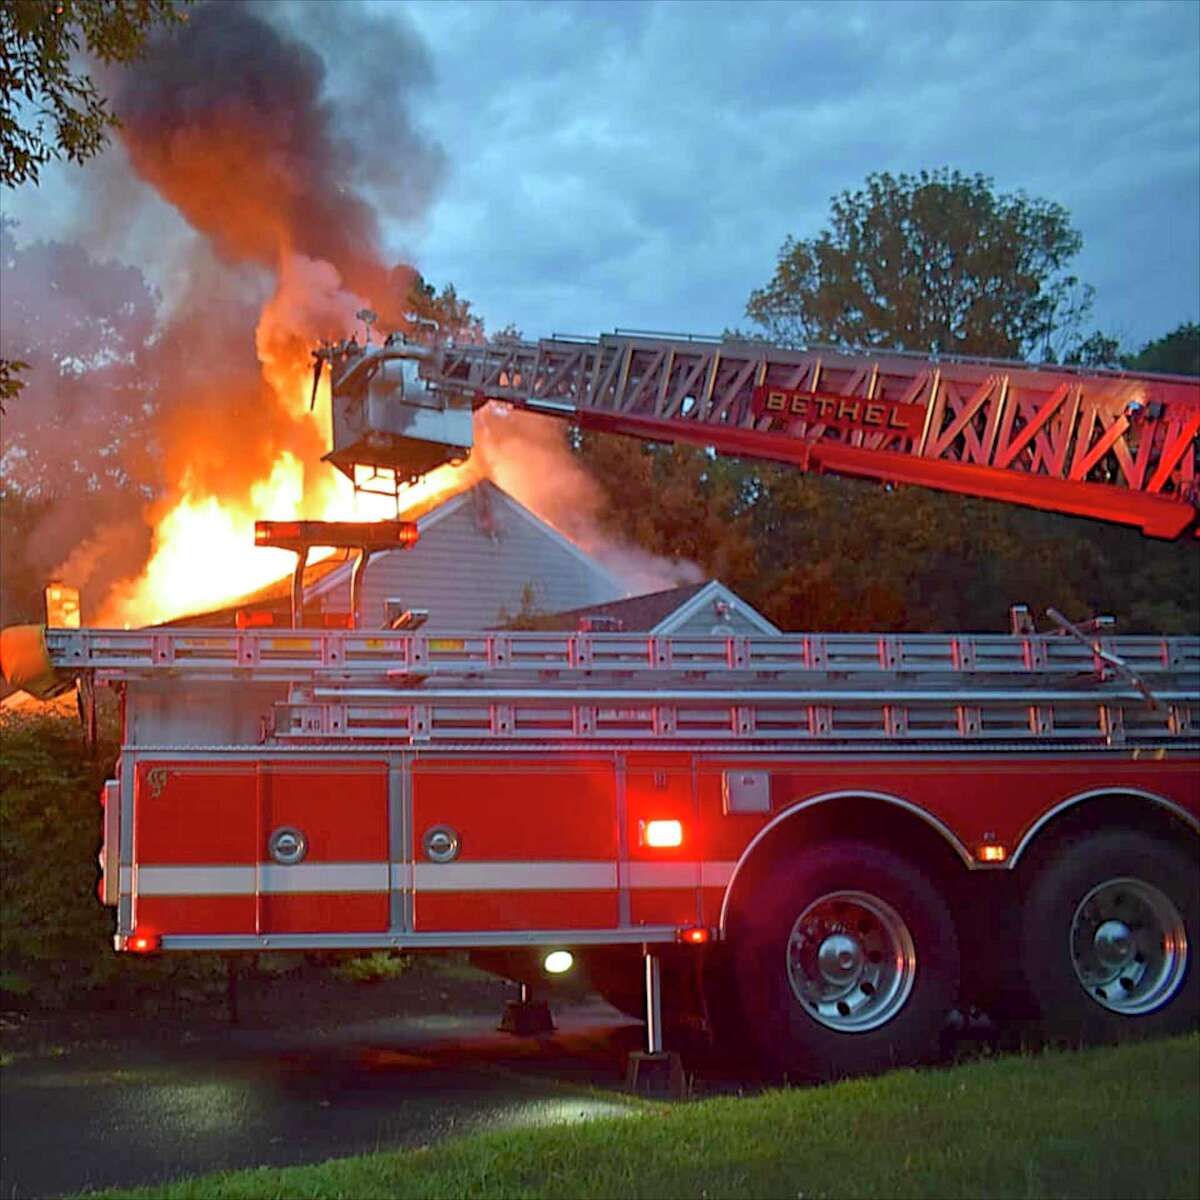 The Bethel Volunteer Fire Department and Stony Hill Fire Department train on the aerial ladder truck. Controversy over the repair the ladder truck has led a call for greater oversight of the volunteer fire departments.